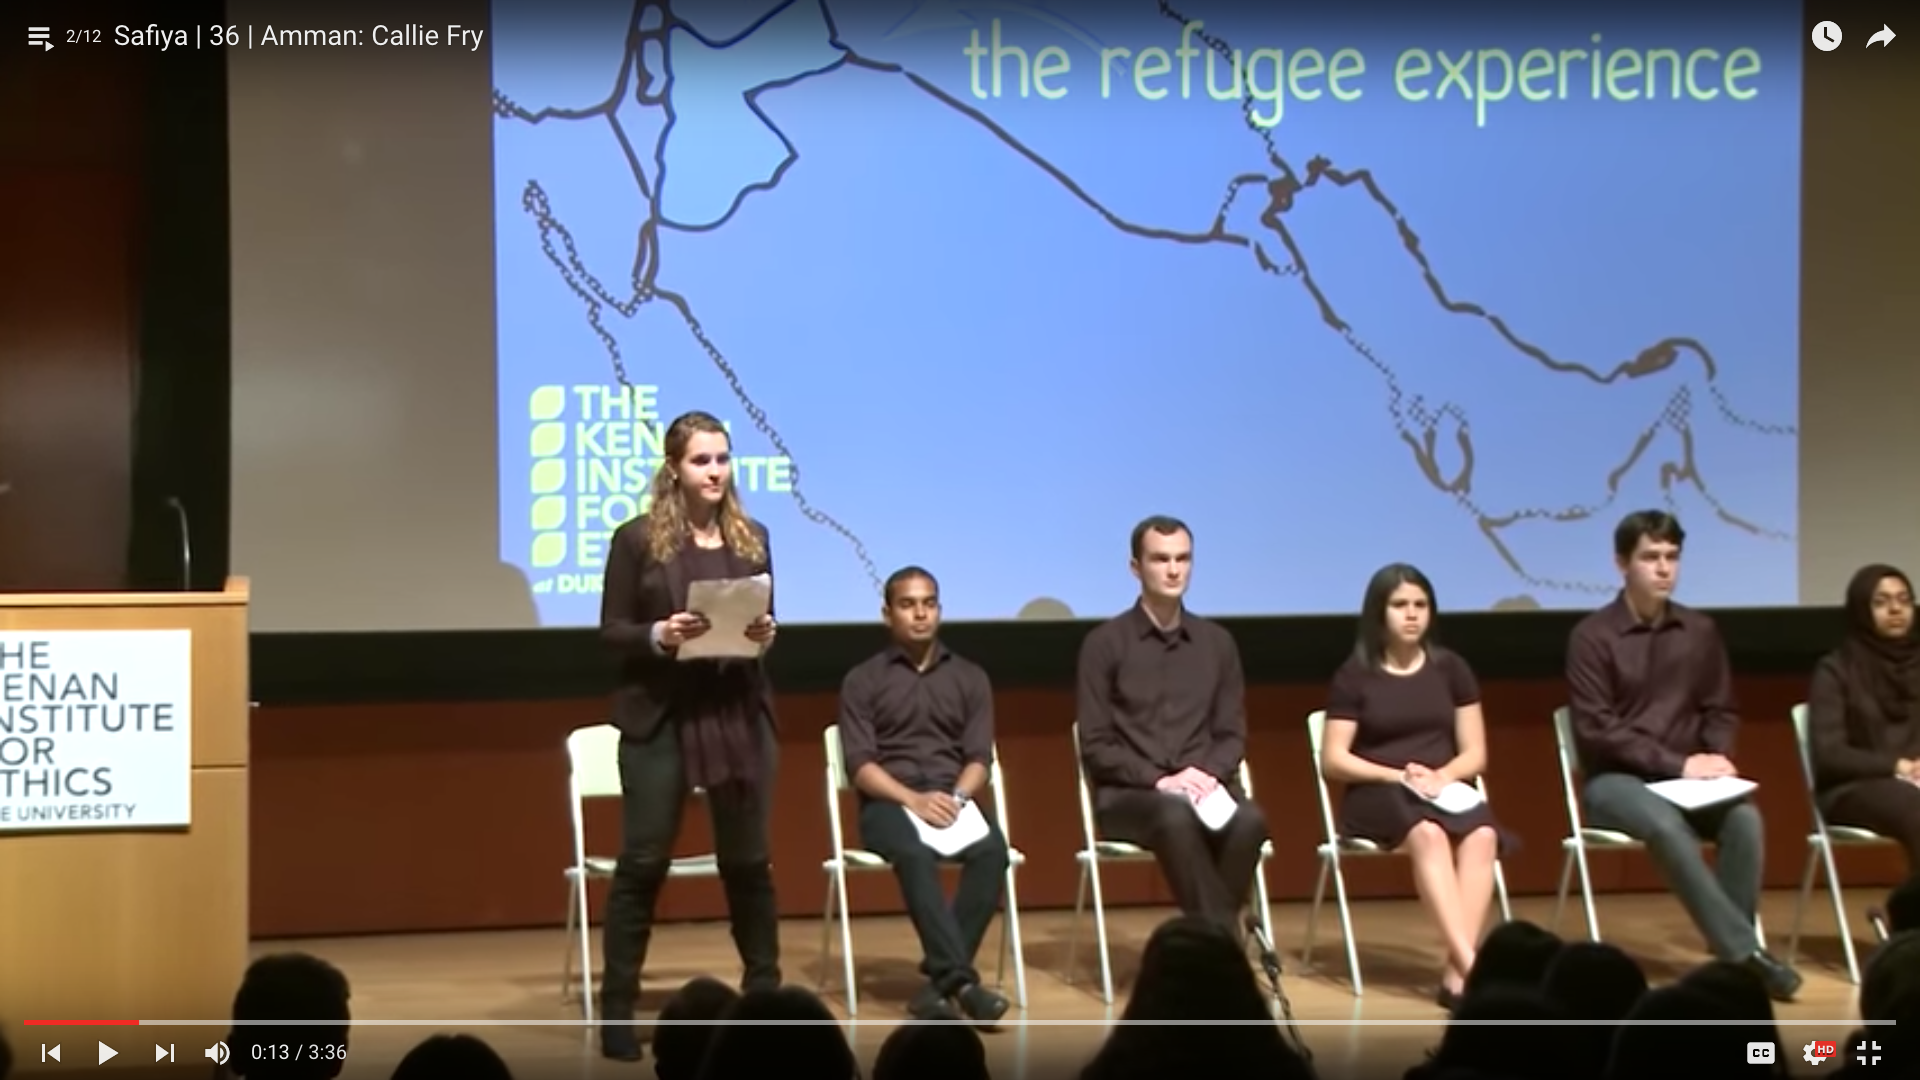 DukeImmerse: Uprooted/Rerouted Undergraduates Share Refugee Stories